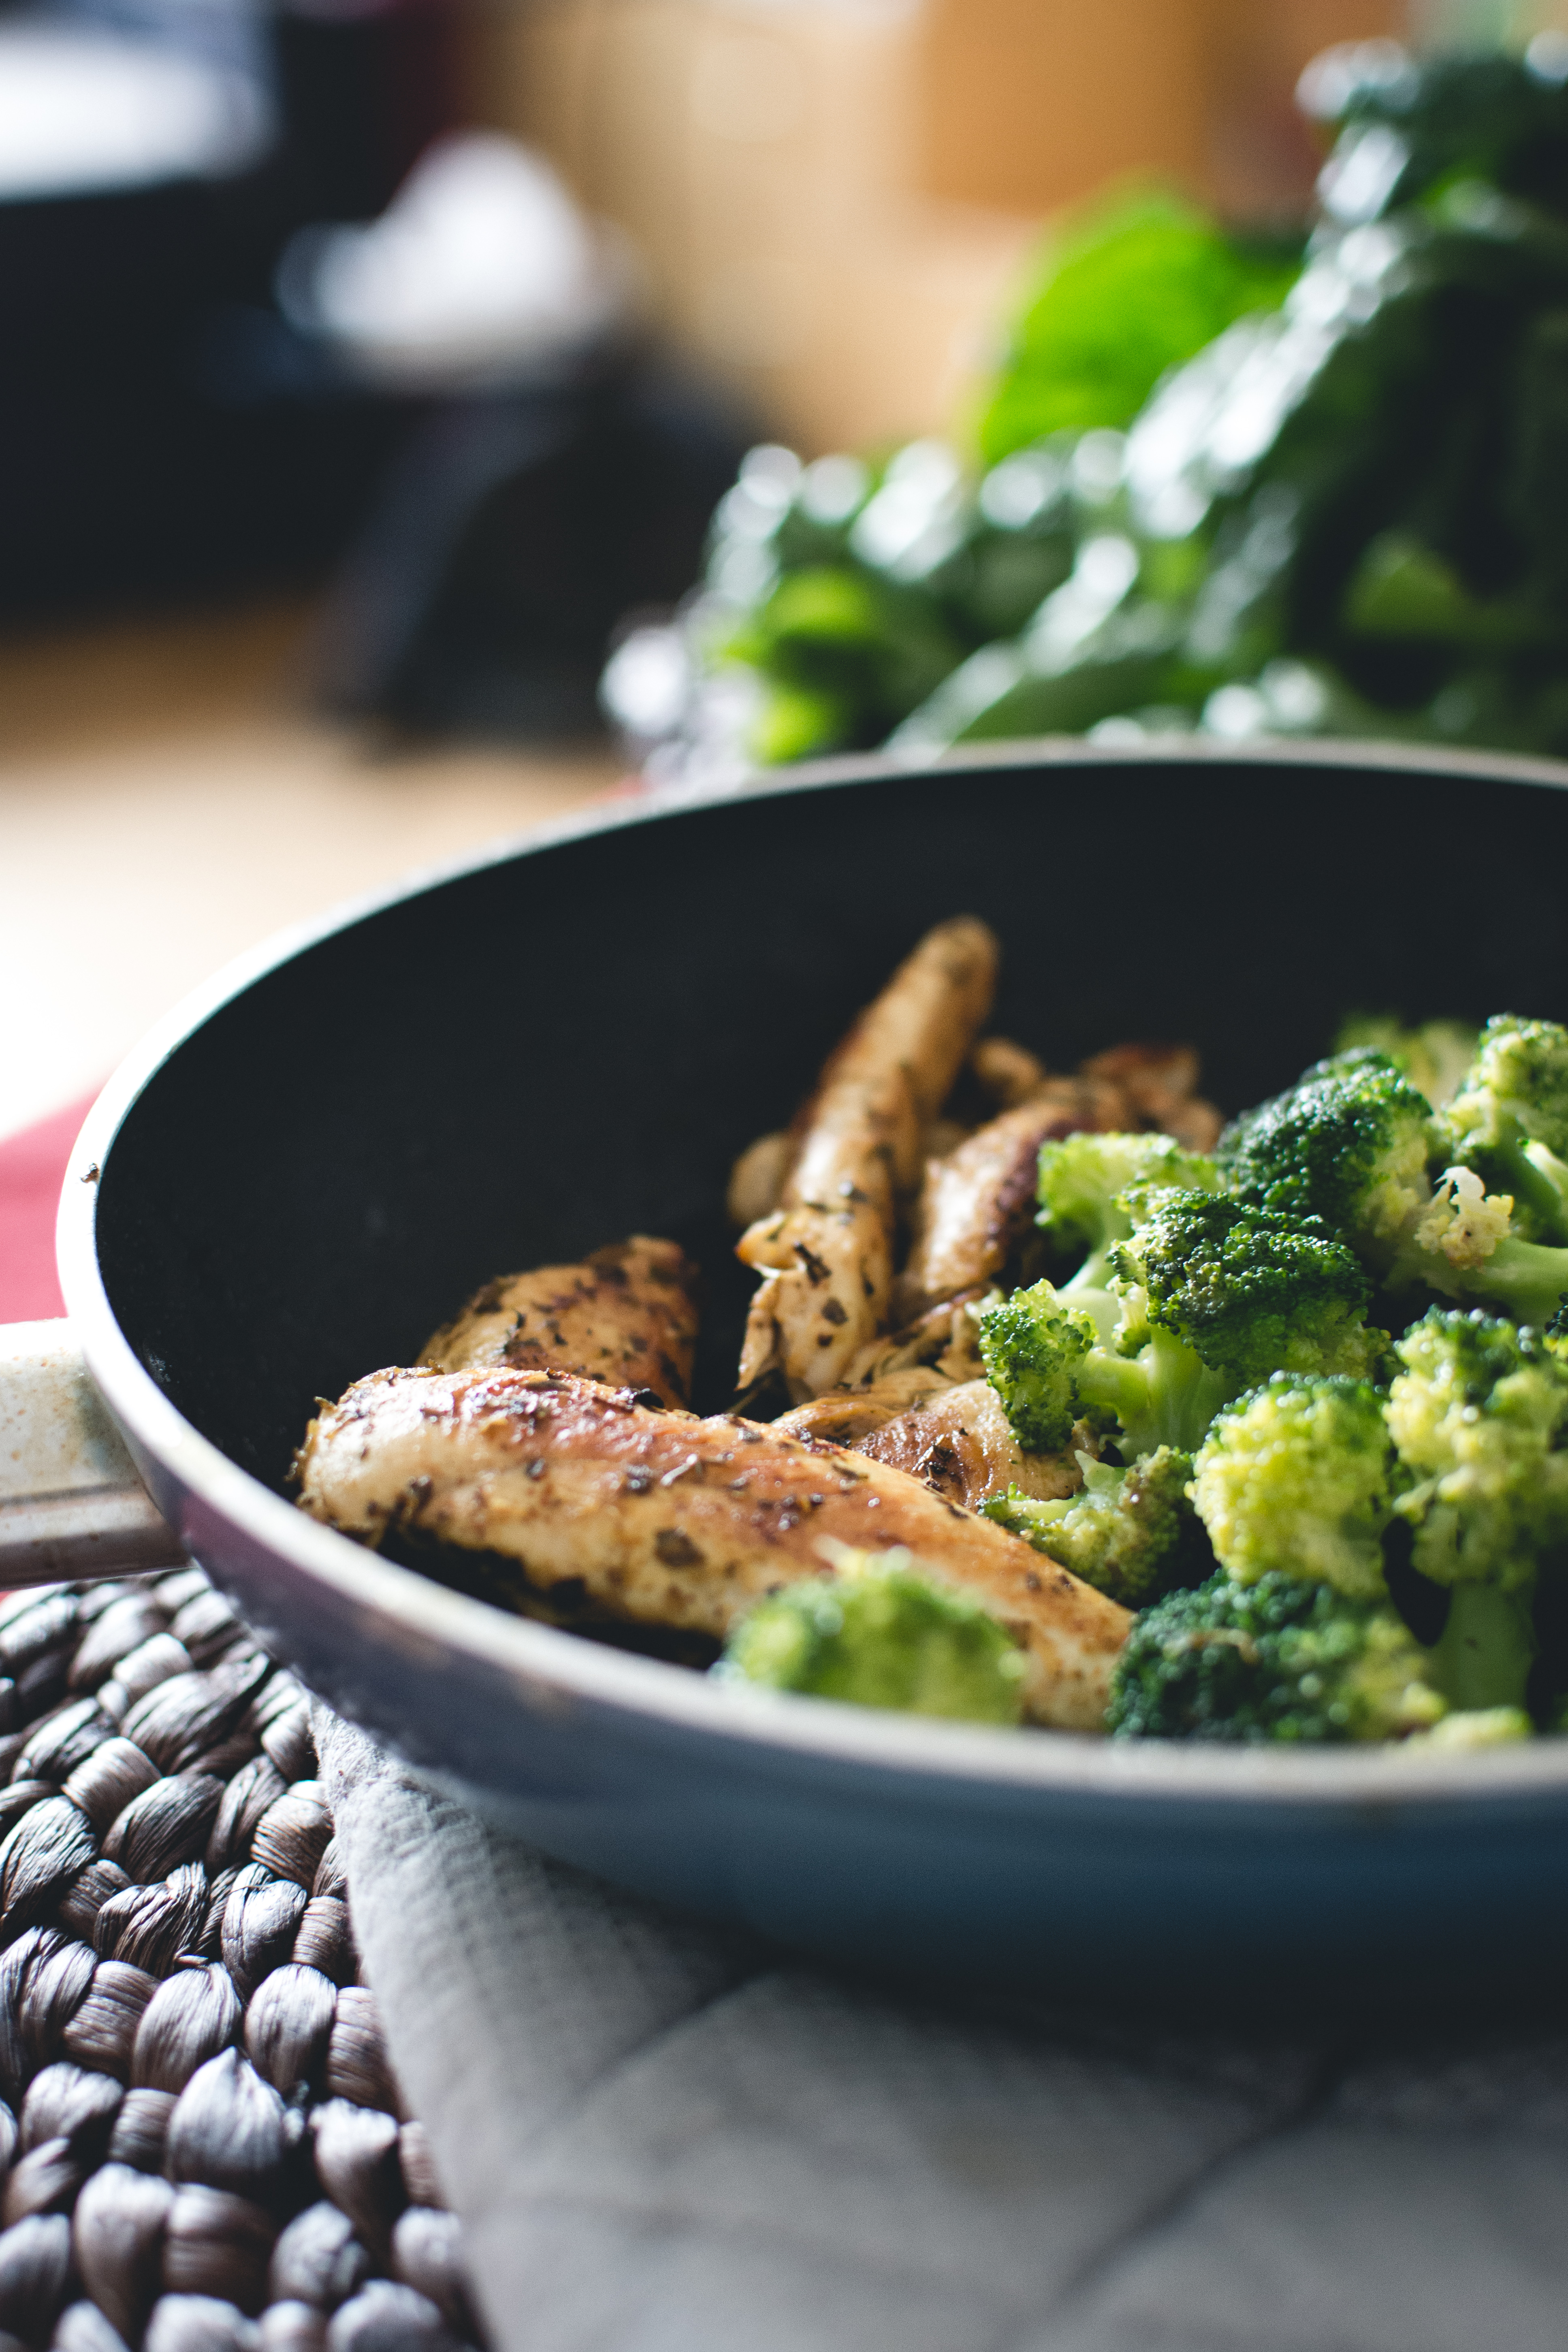 Chicken breast steak with broccoli